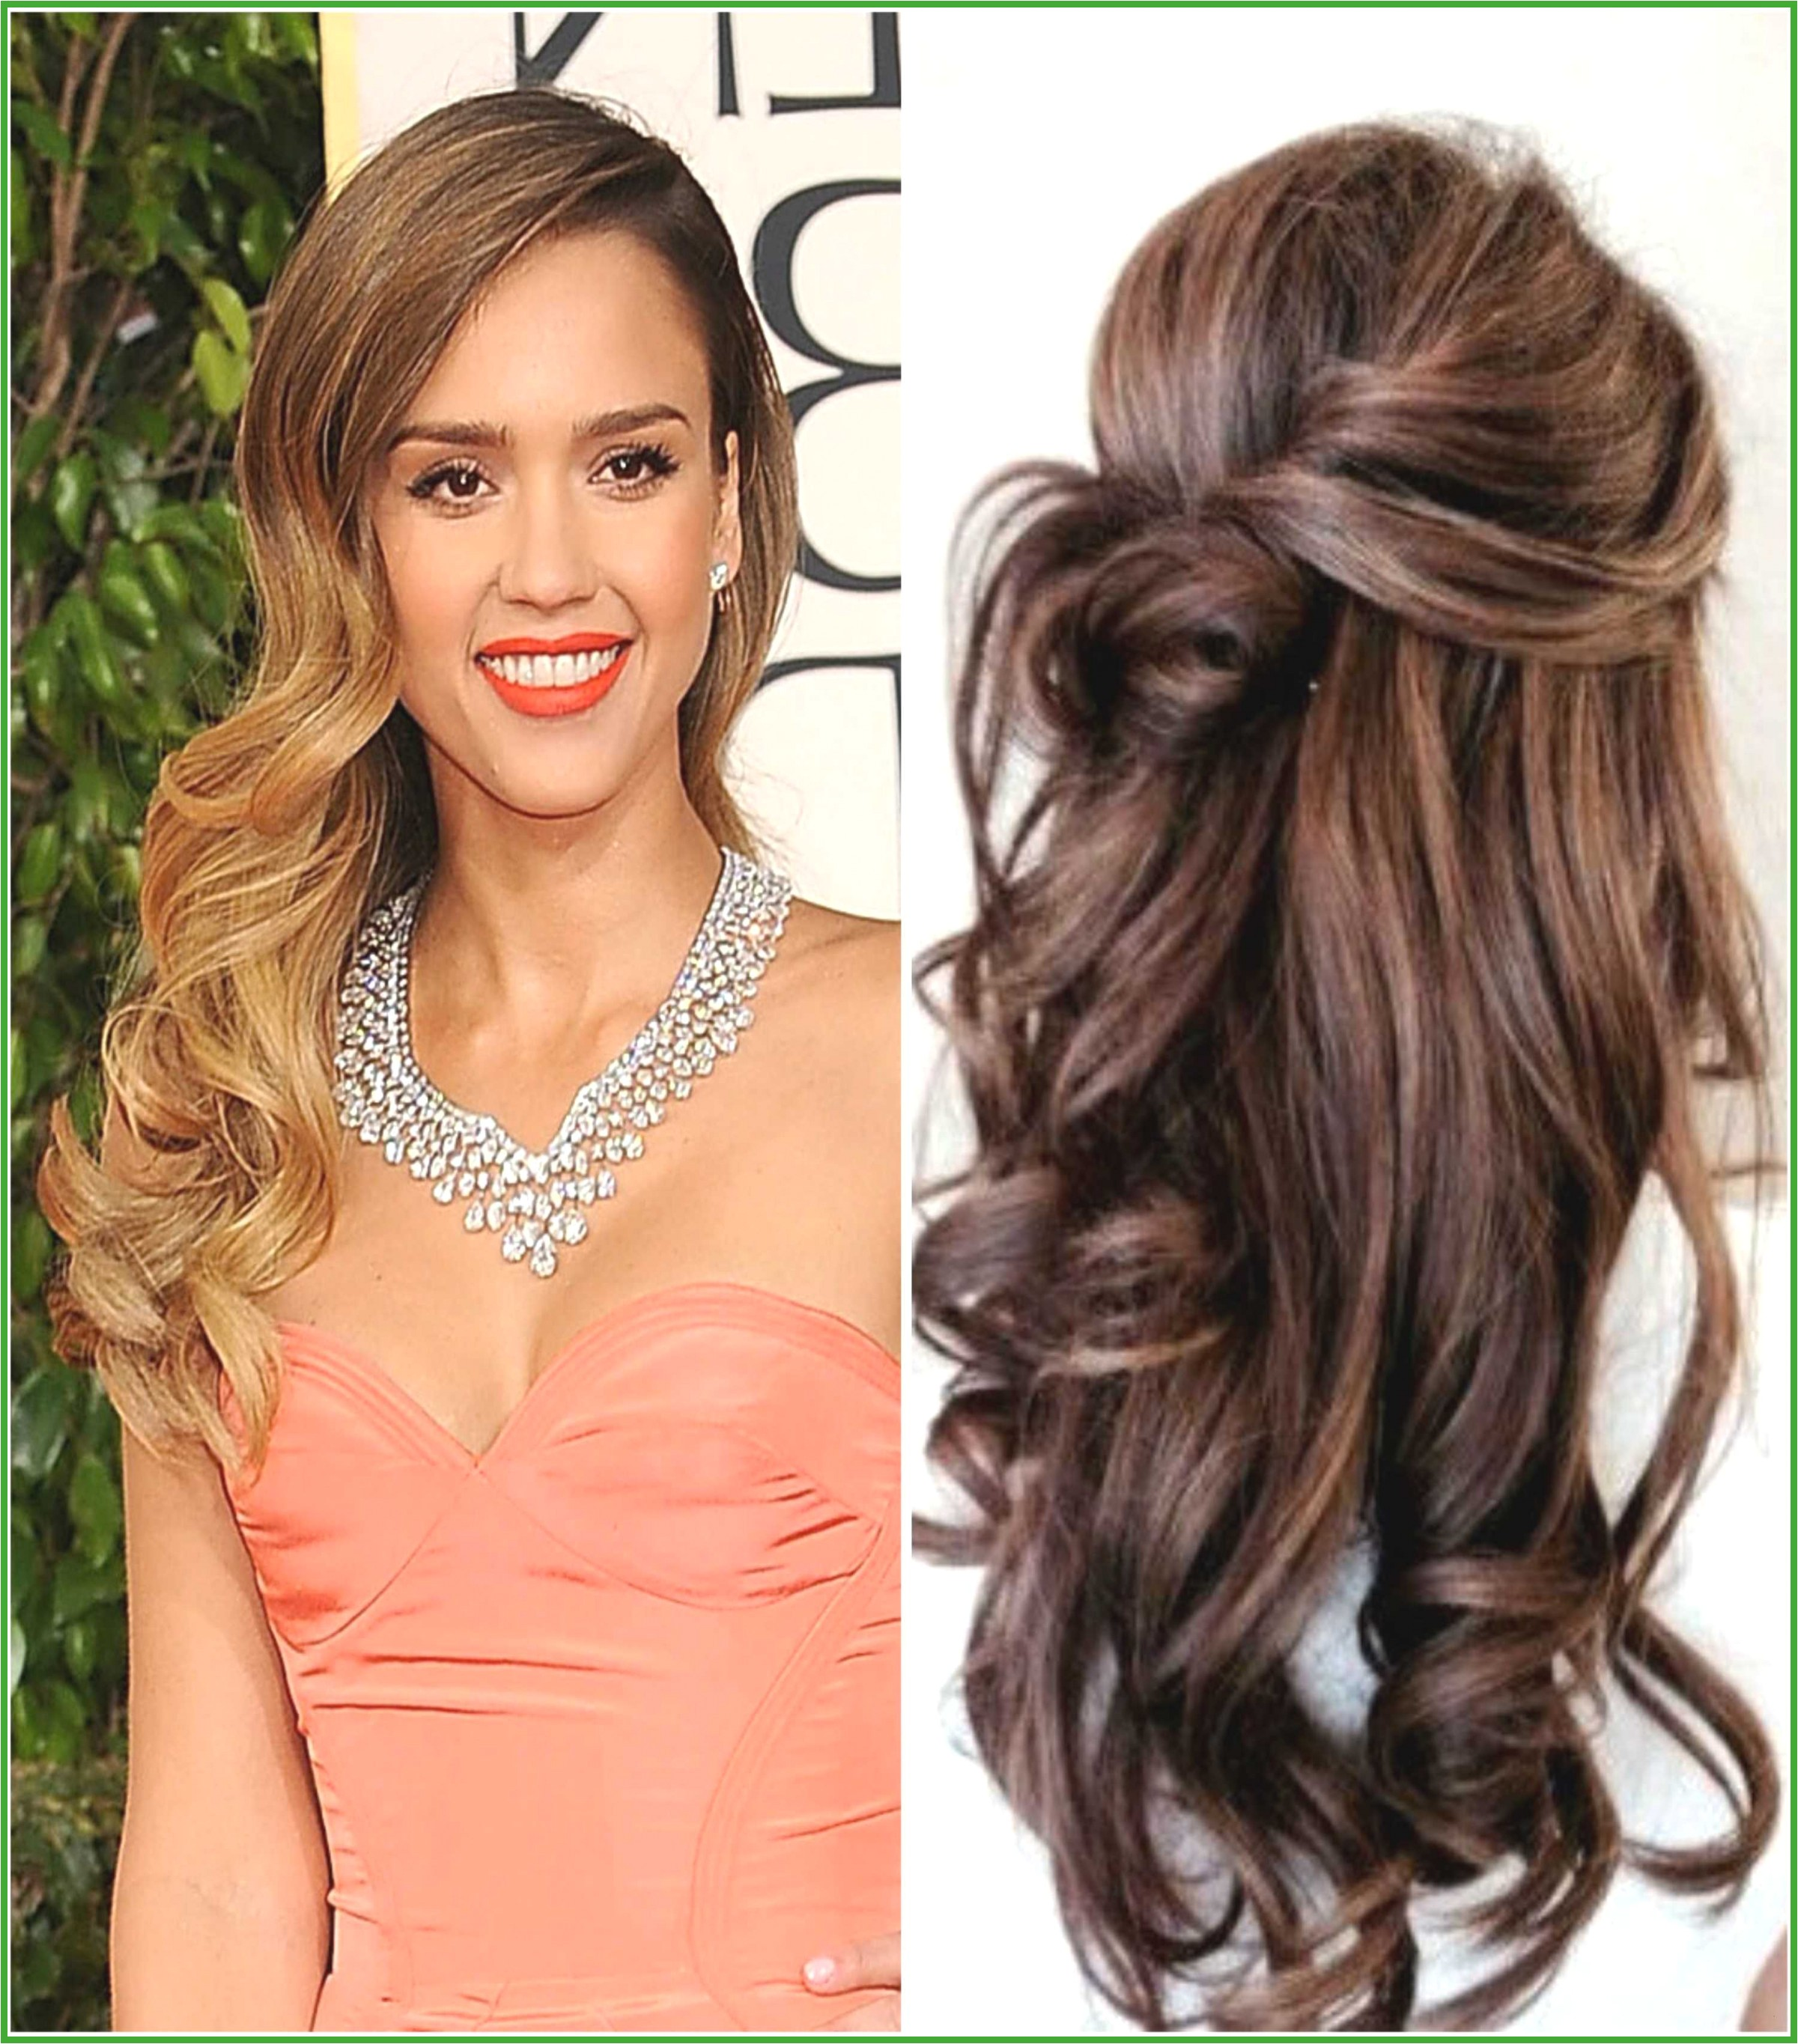 Hair Styling Girl Pics Best 20 Hair Cutting Style for Long Hair Hair Styling Girl